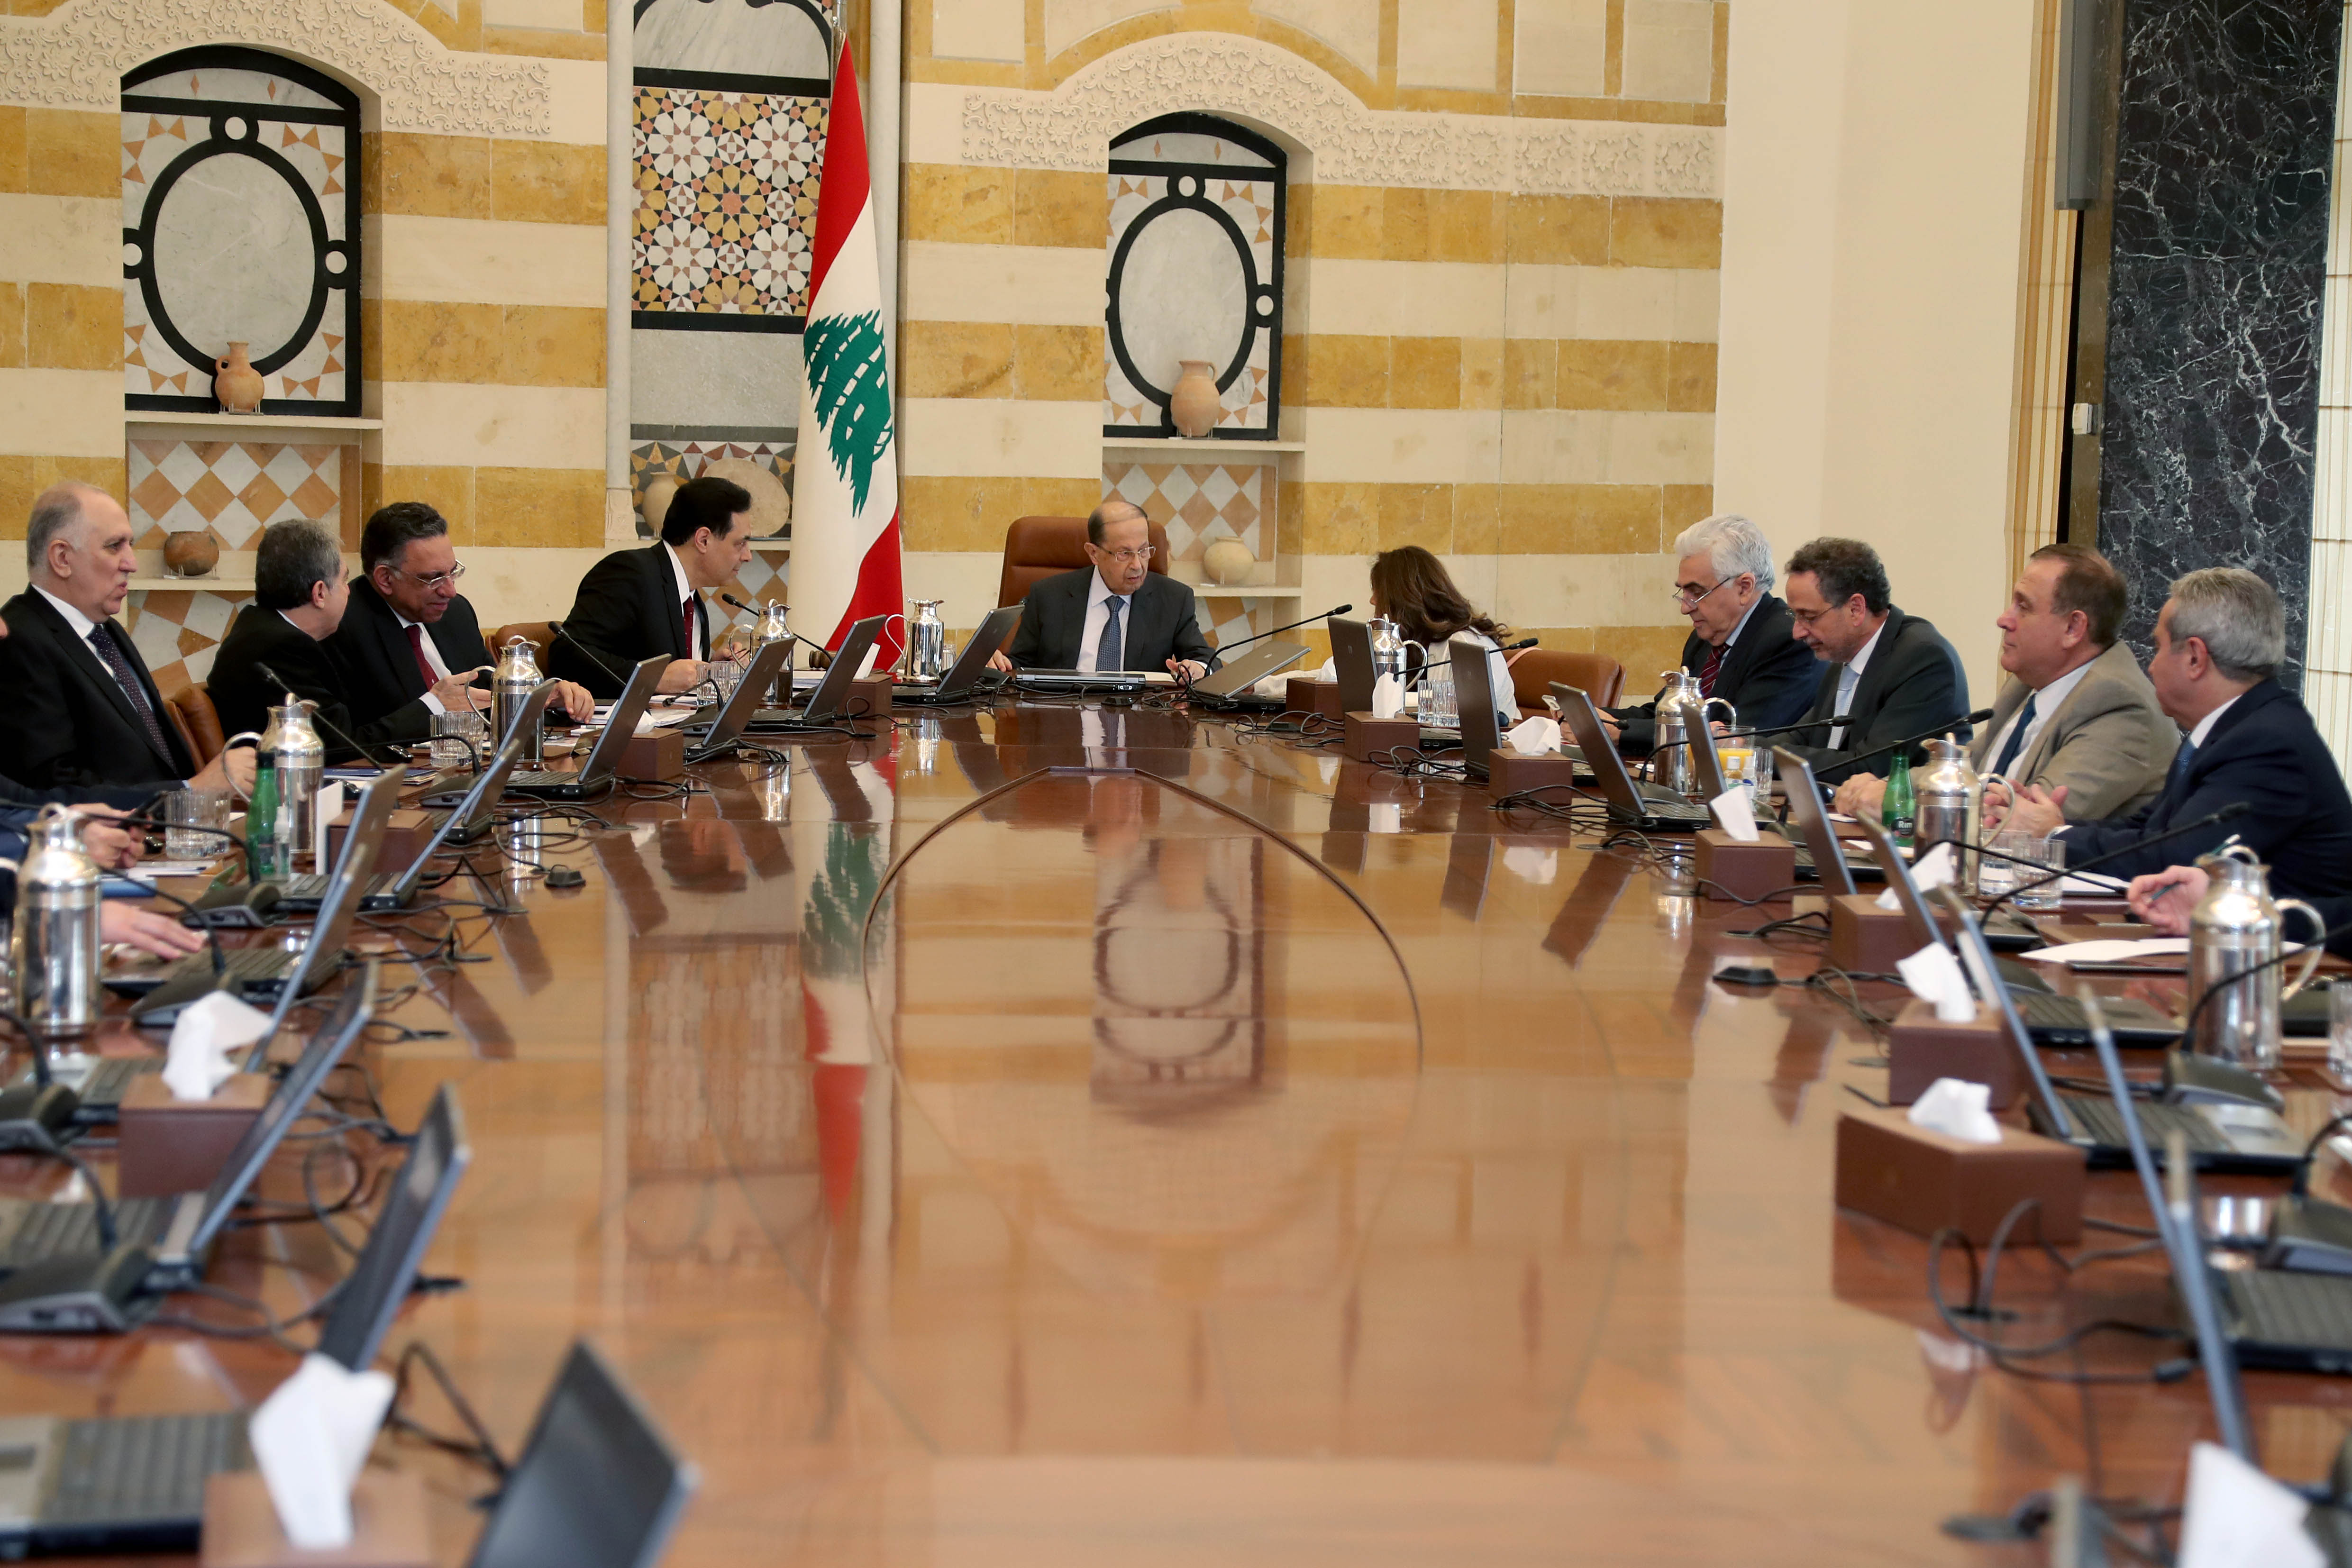 4 - Ministerial Council